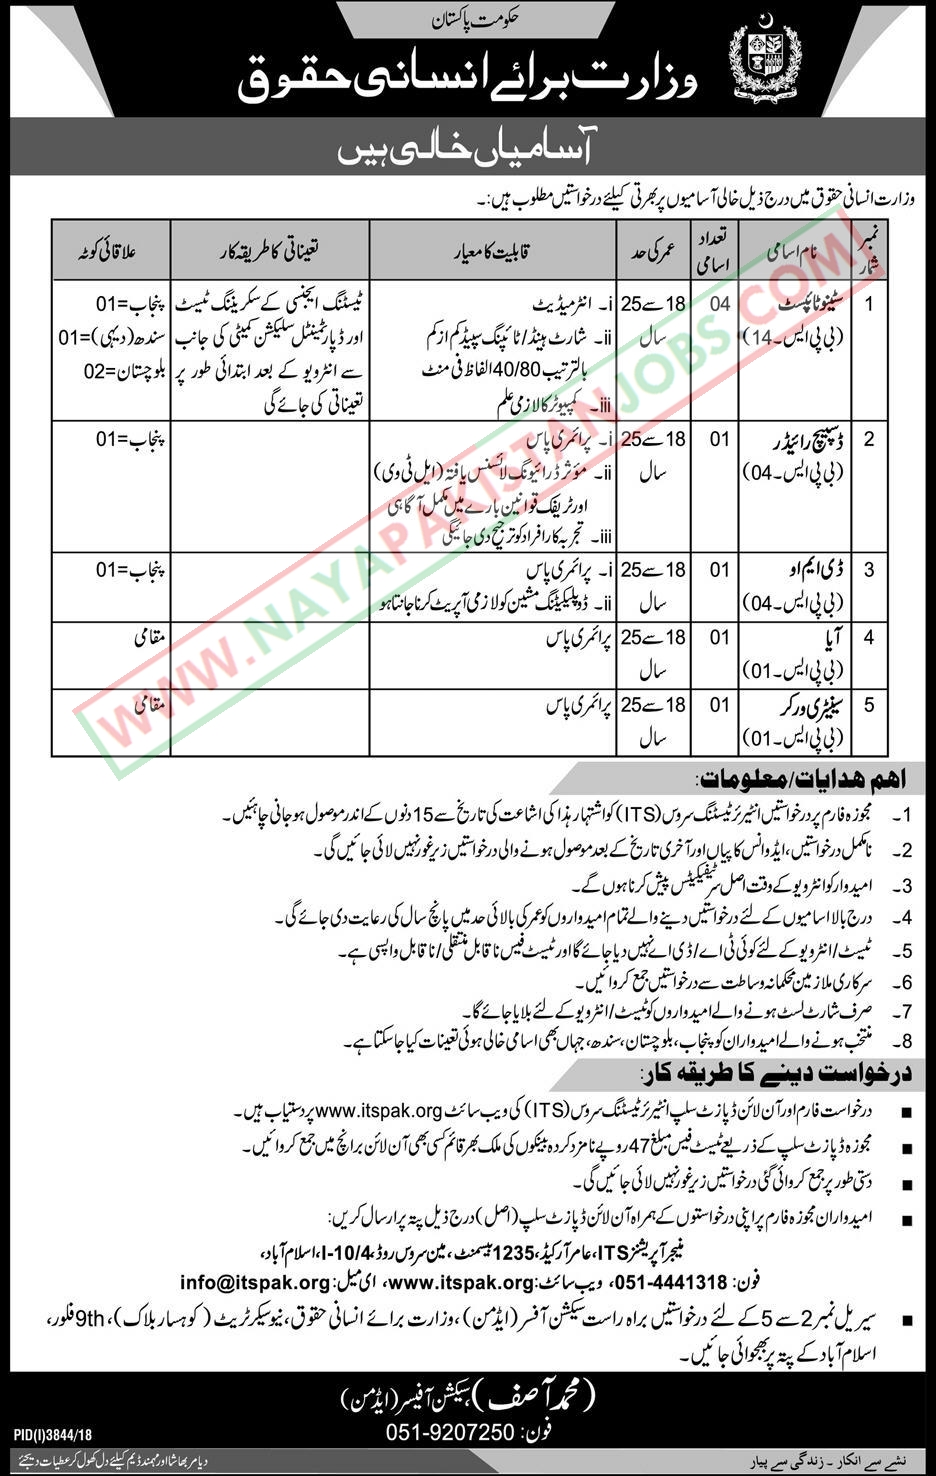 Ministry Of Human Rights Jobs 2019 Feb,  Govt of Pakistan Ministry Of Human Rights Jobs 2019 Feb